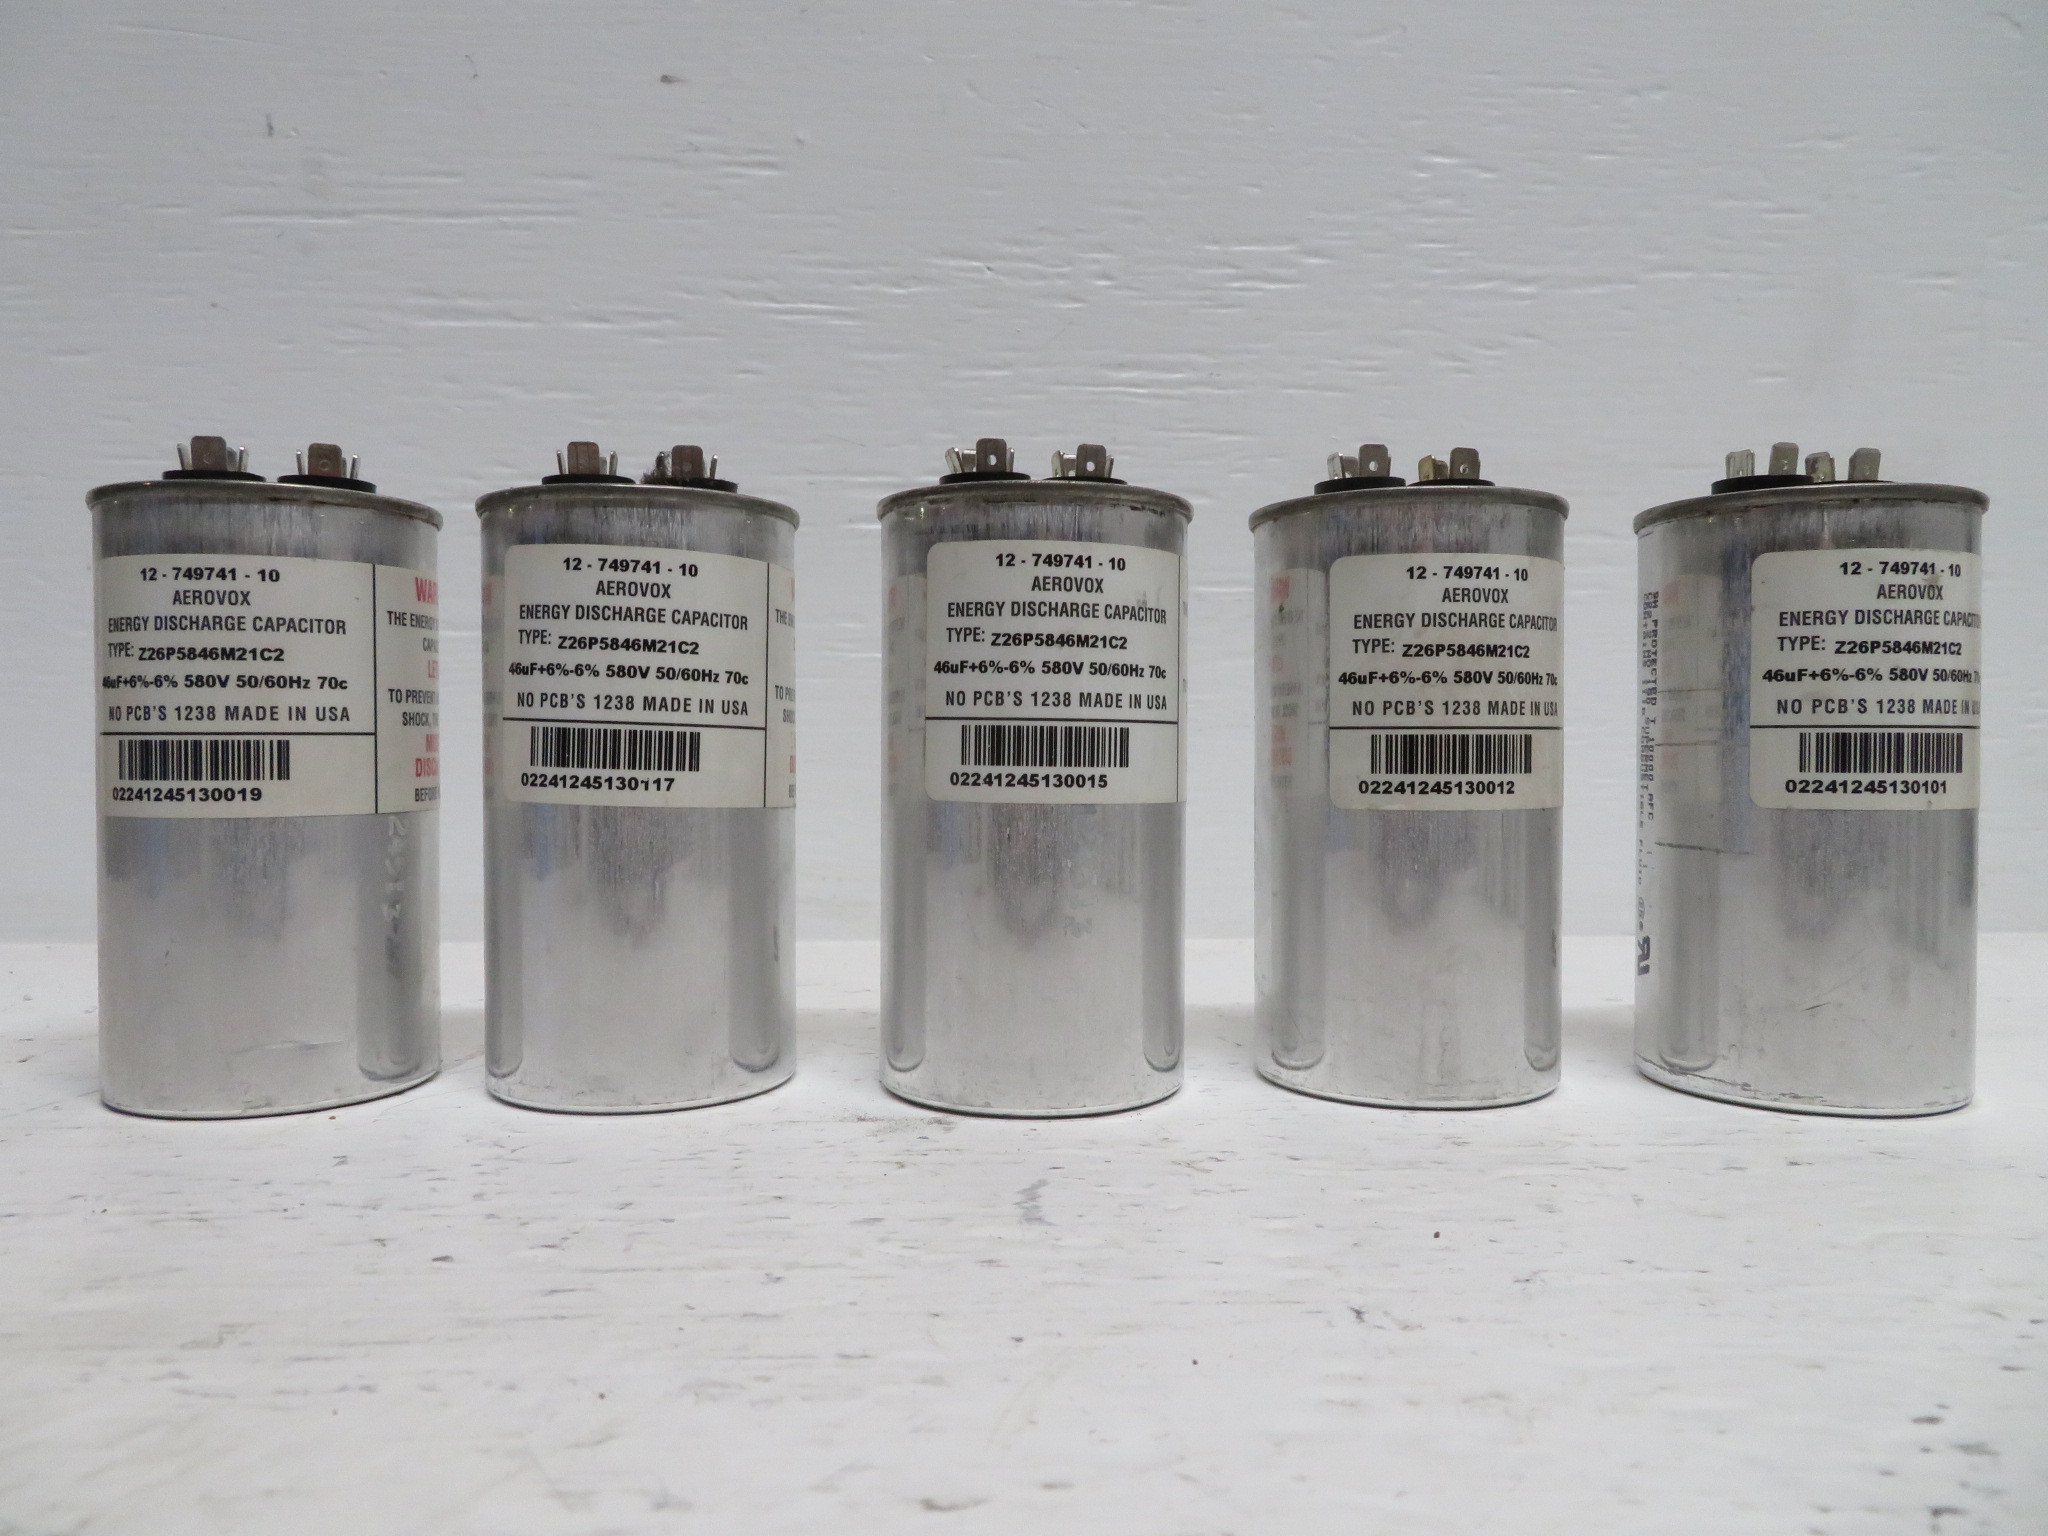 hight resolution of lot of 5 aerovox 12 749741 10 capacitor z26p5846m21c2 46 uf 6 580 vac np2295 3 river city industrial